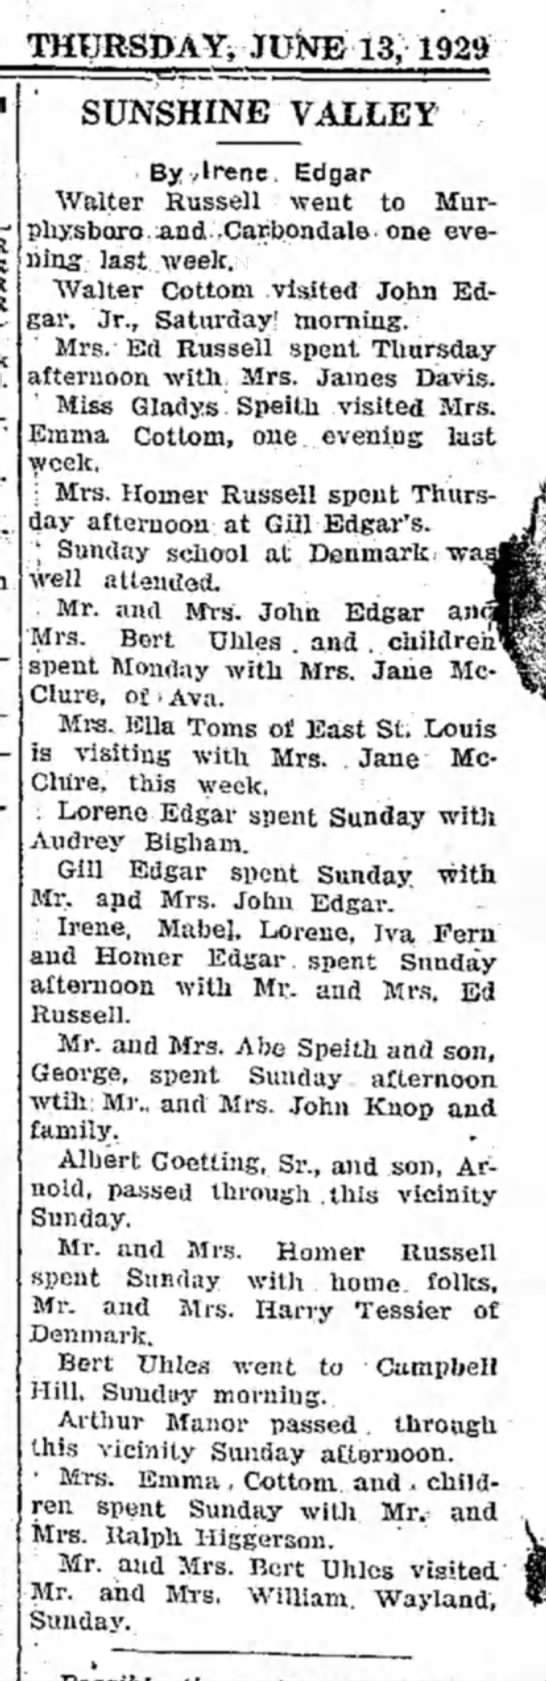 Sunshine Valley News con't - THURSDAY^ JUNE 13, 1929 SUNSHINE VALLEY By...